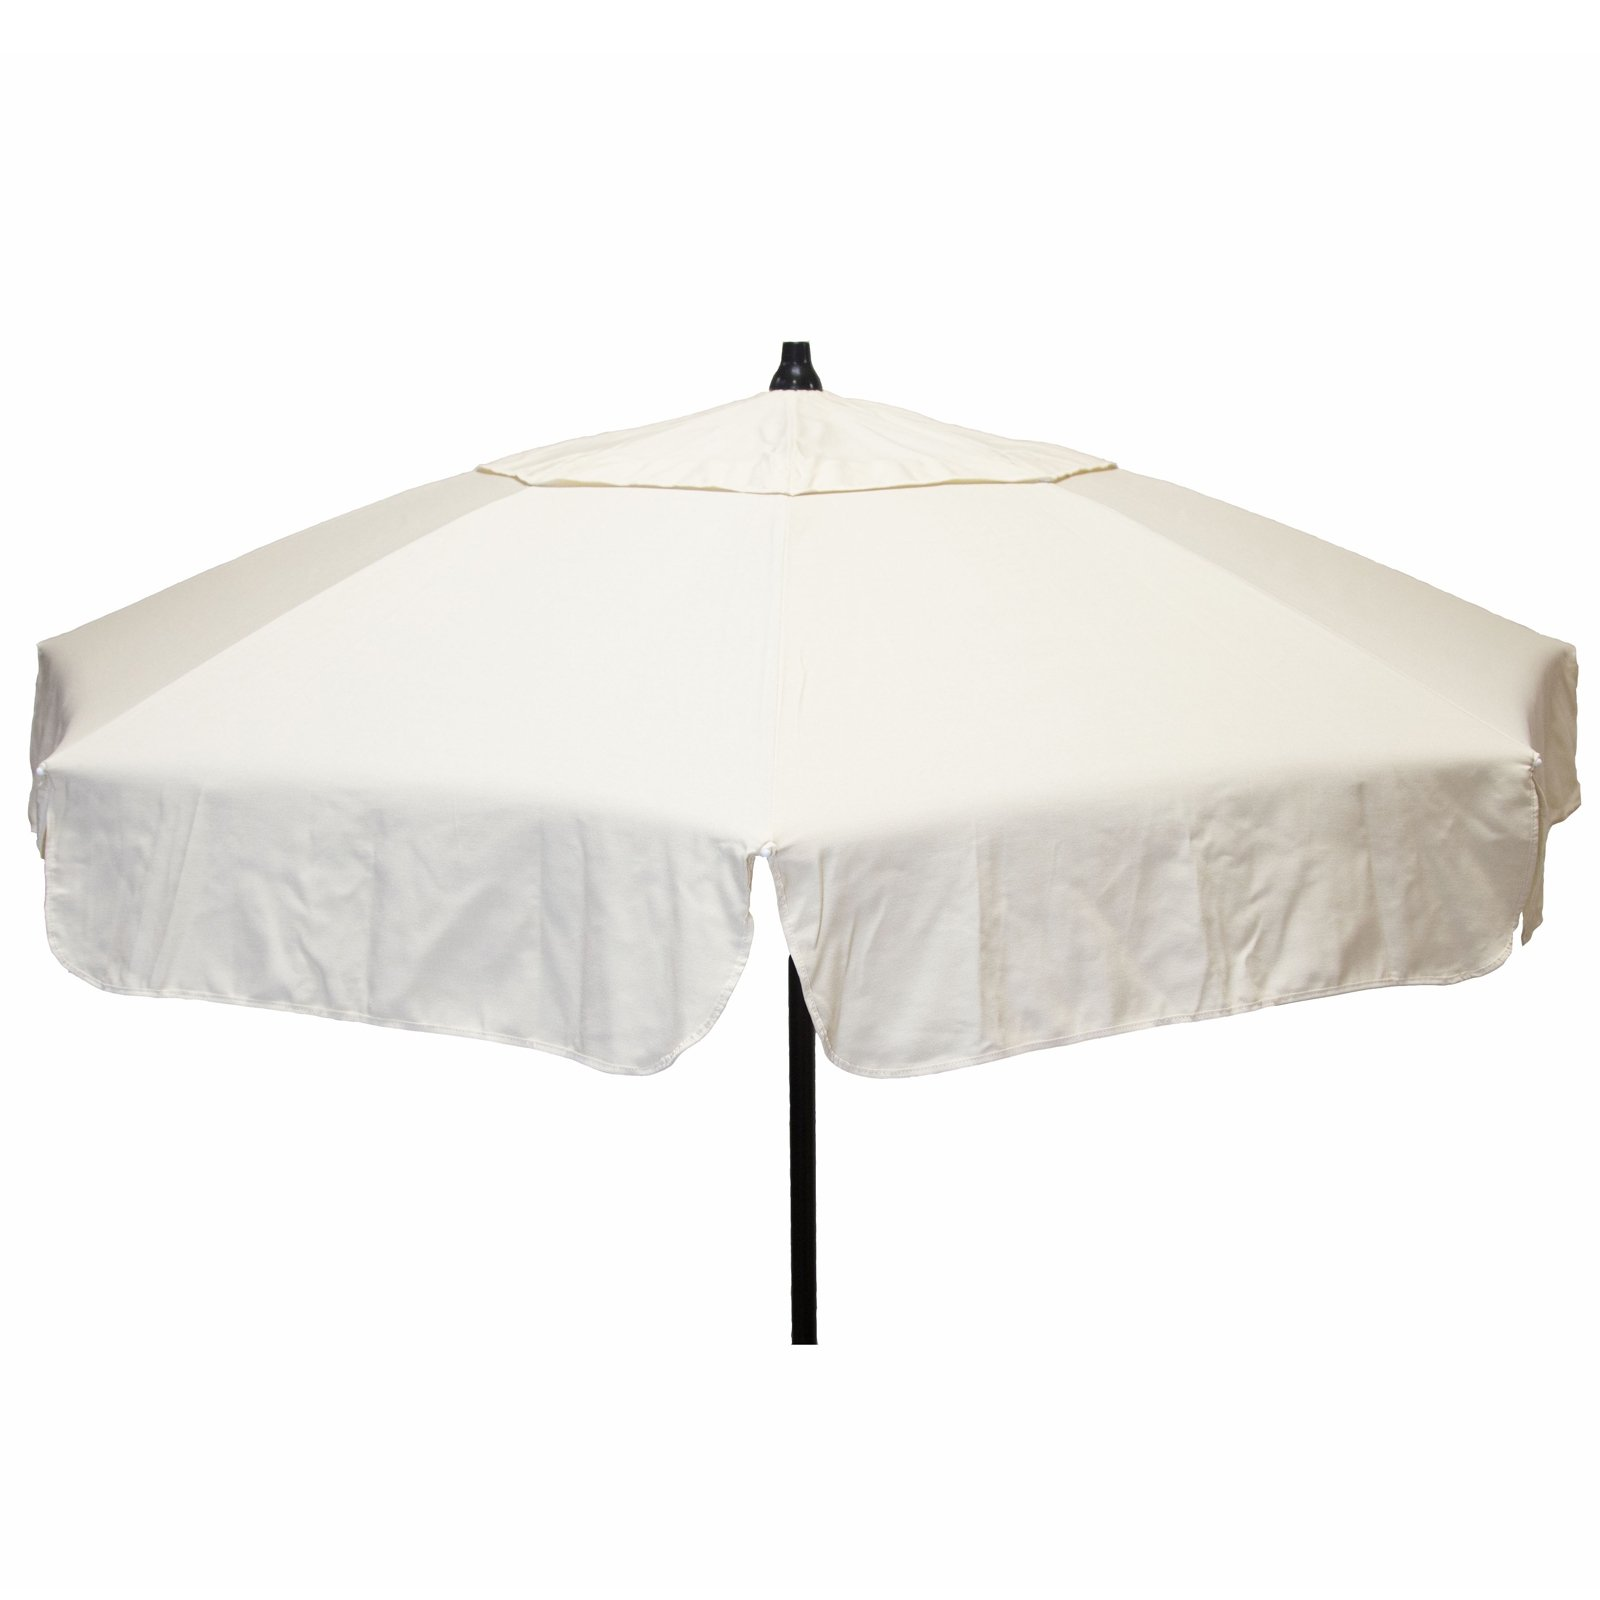 6ft Italian Market Tilt Umbrella Home Patio Sun Canopy Natural Beach Pole